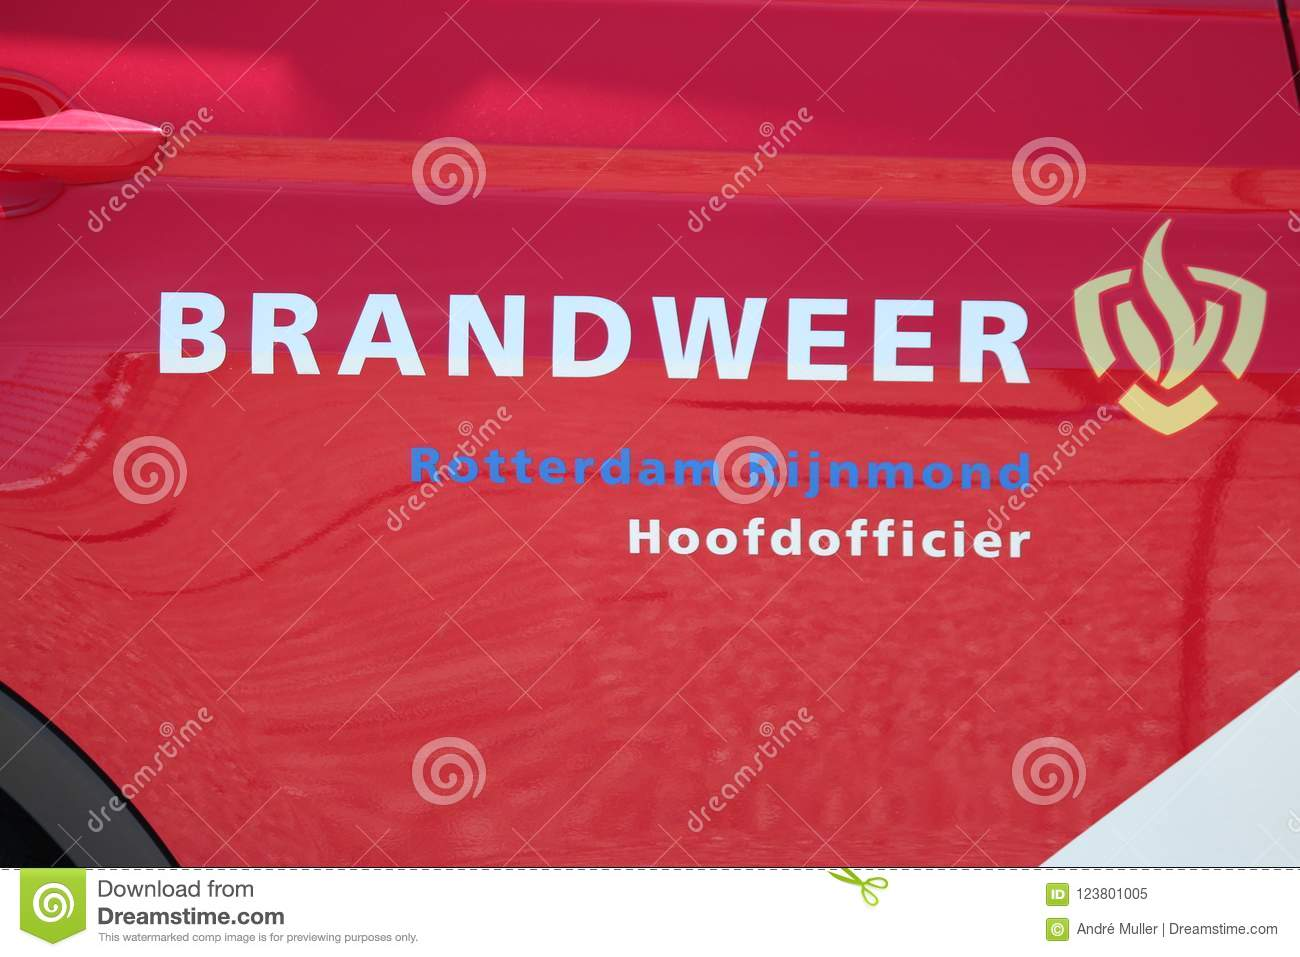 Logo Of The Dutch Fire Fighters Brigade In The Netherlands With Name